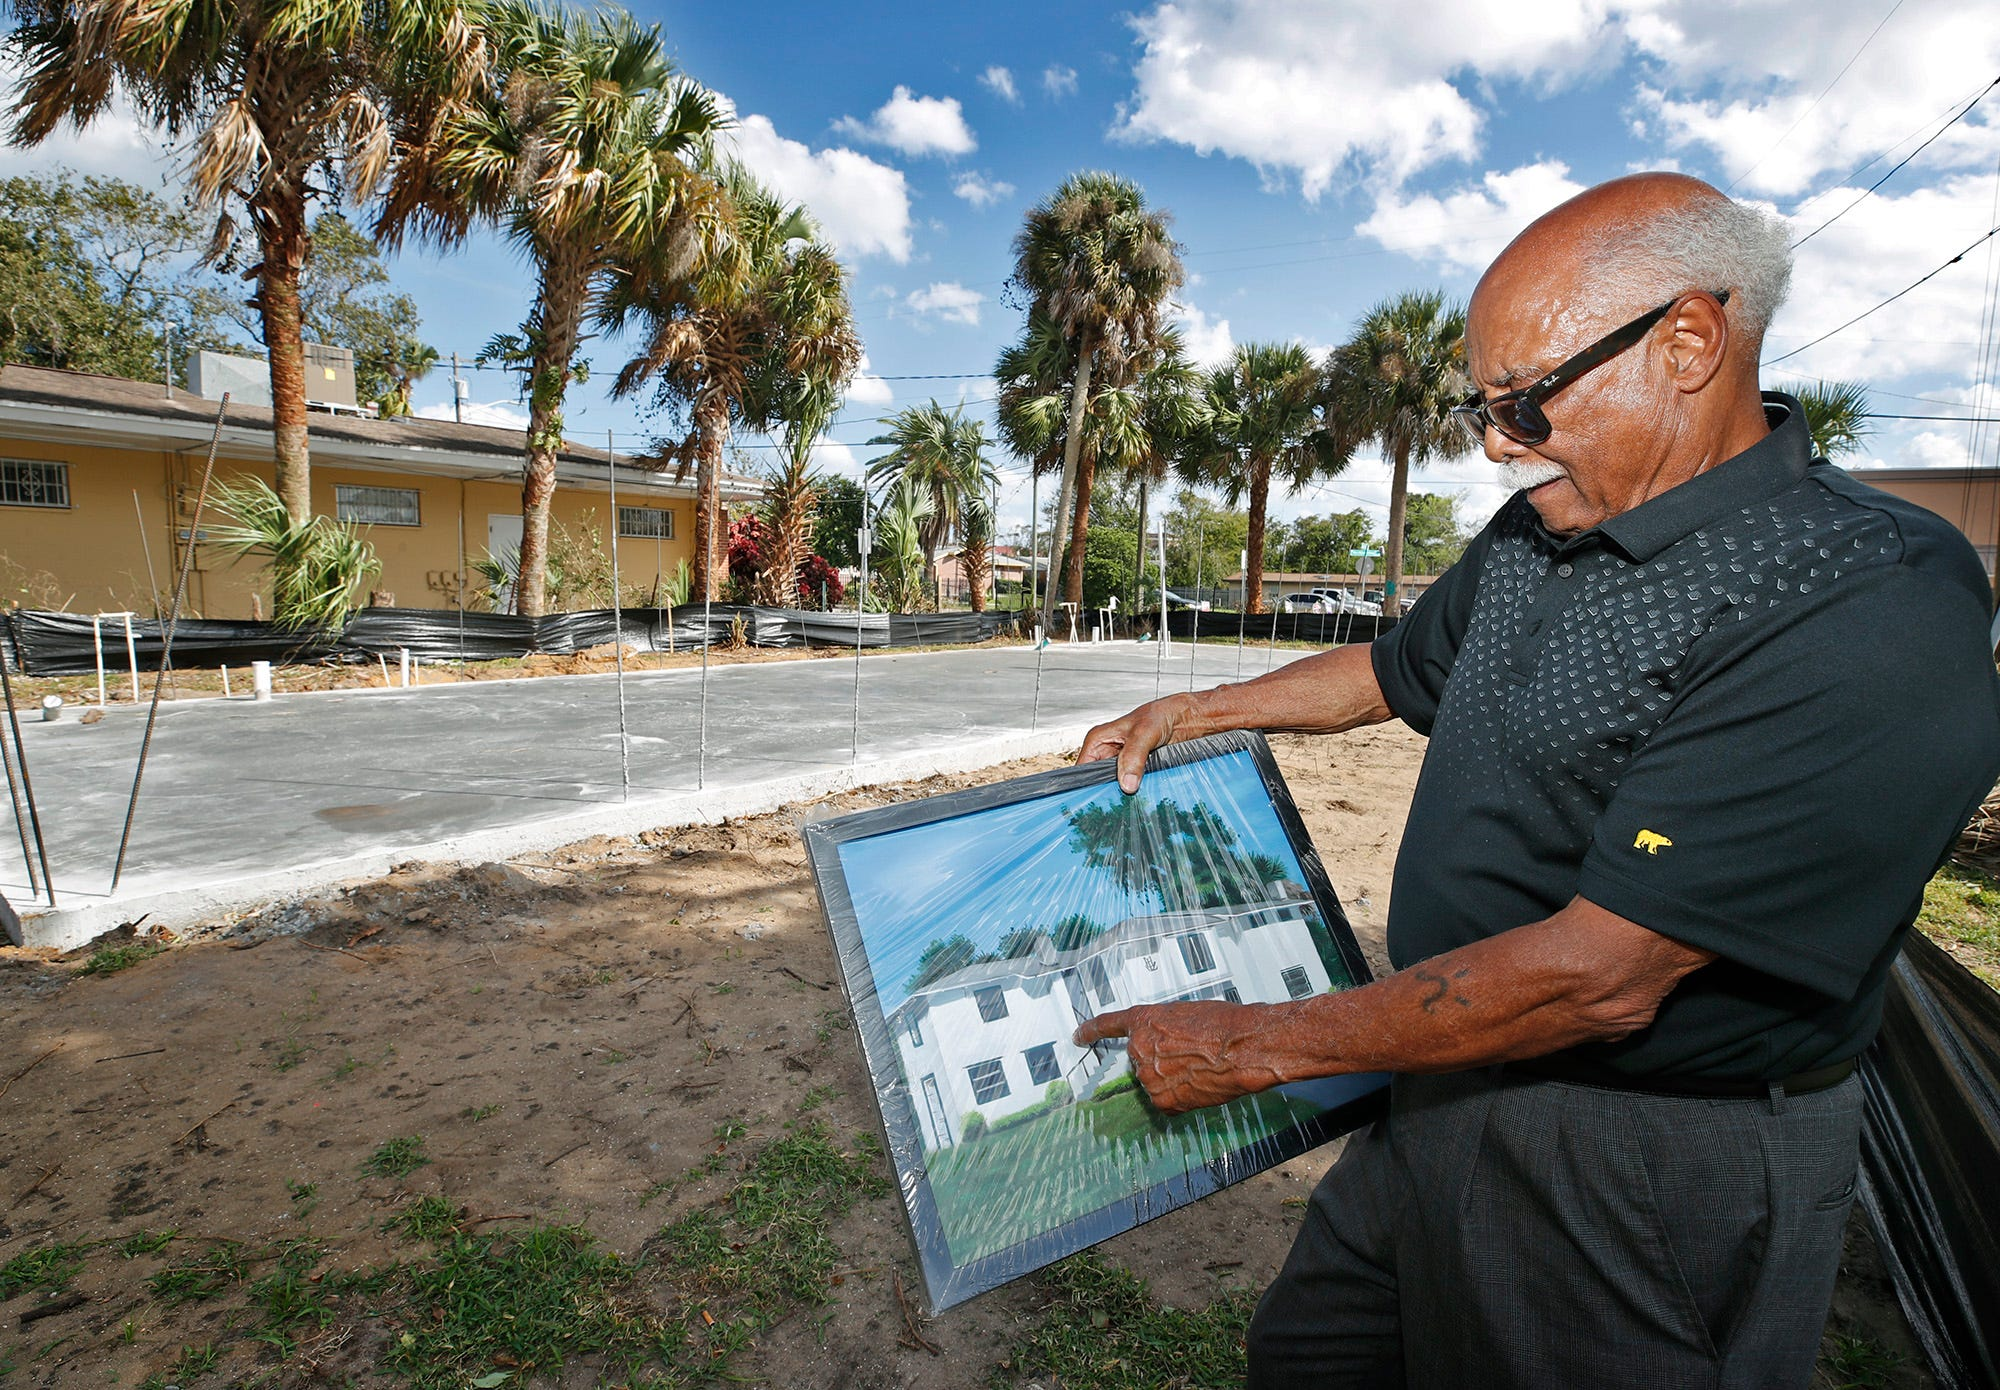 Harold Lucas shows a picture of the home he was born and raised in. He's shown standing on the site of the home located at the northeast corner of Mary McLeod Bethune Boulevard and Jefferson Street. He had the home demolished after someone drove their car into it. He's now building a structure that will house his personal mementos and memorabilia of Mary McLeod Bethune, and provide meeting space.